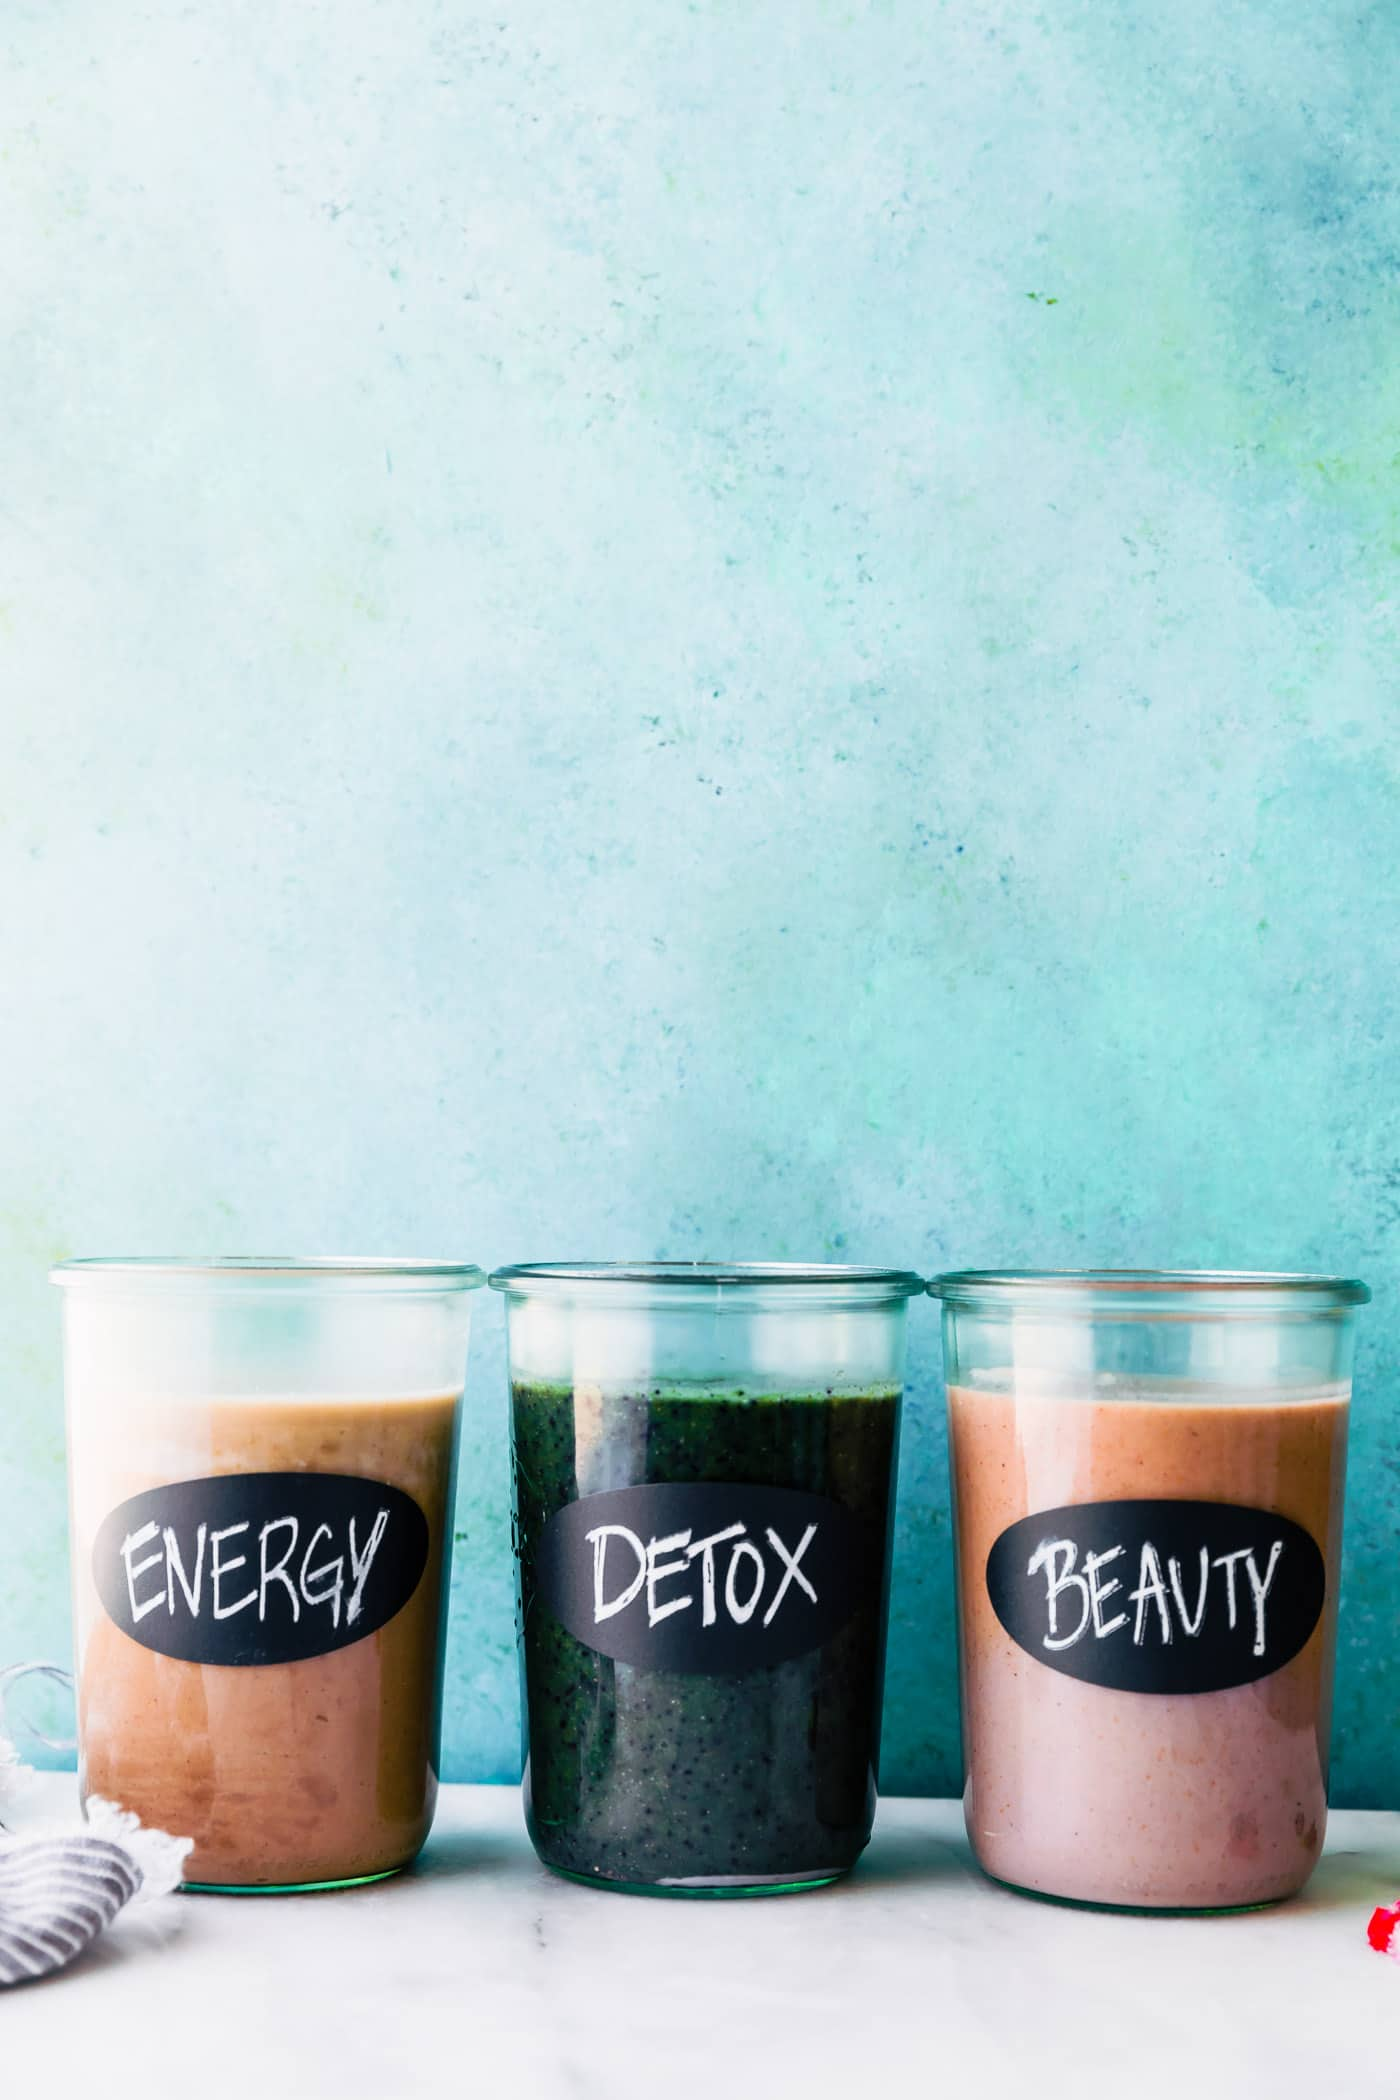 These 3 Make-Ahead Smoothie Packs are made using a variety of fruit, greens, Vital Proteins collagen, and other nutrient-rich ingredients. How to make DETOX, ENERGIZE, and BEAUTIFY SMOOTHIE PACKS